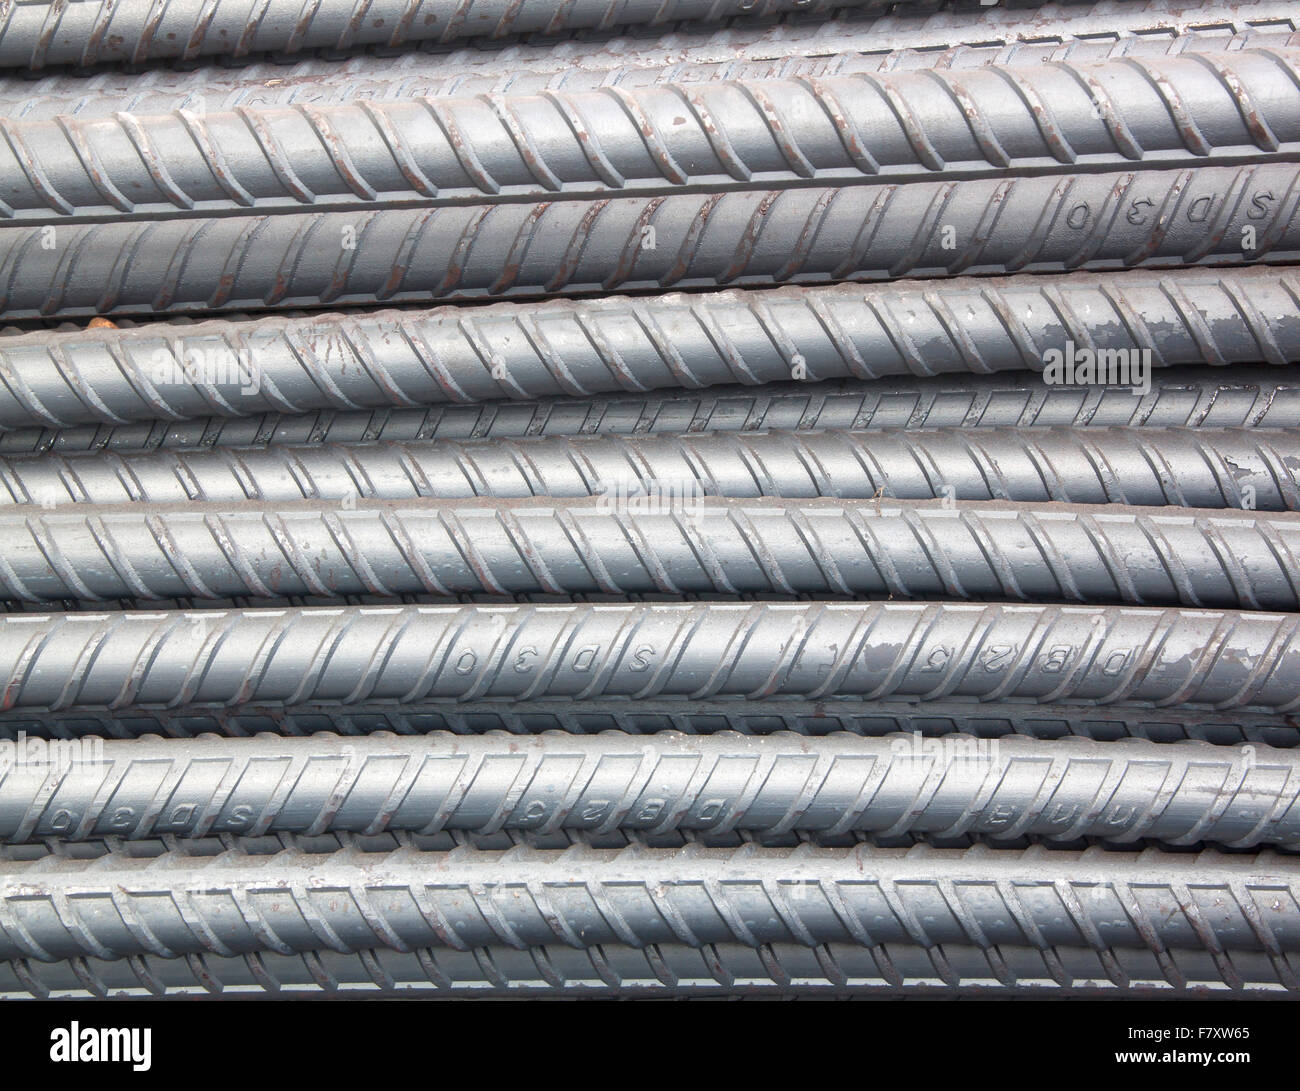 Sturdy steel steel bar construction material industry. - Stock Image